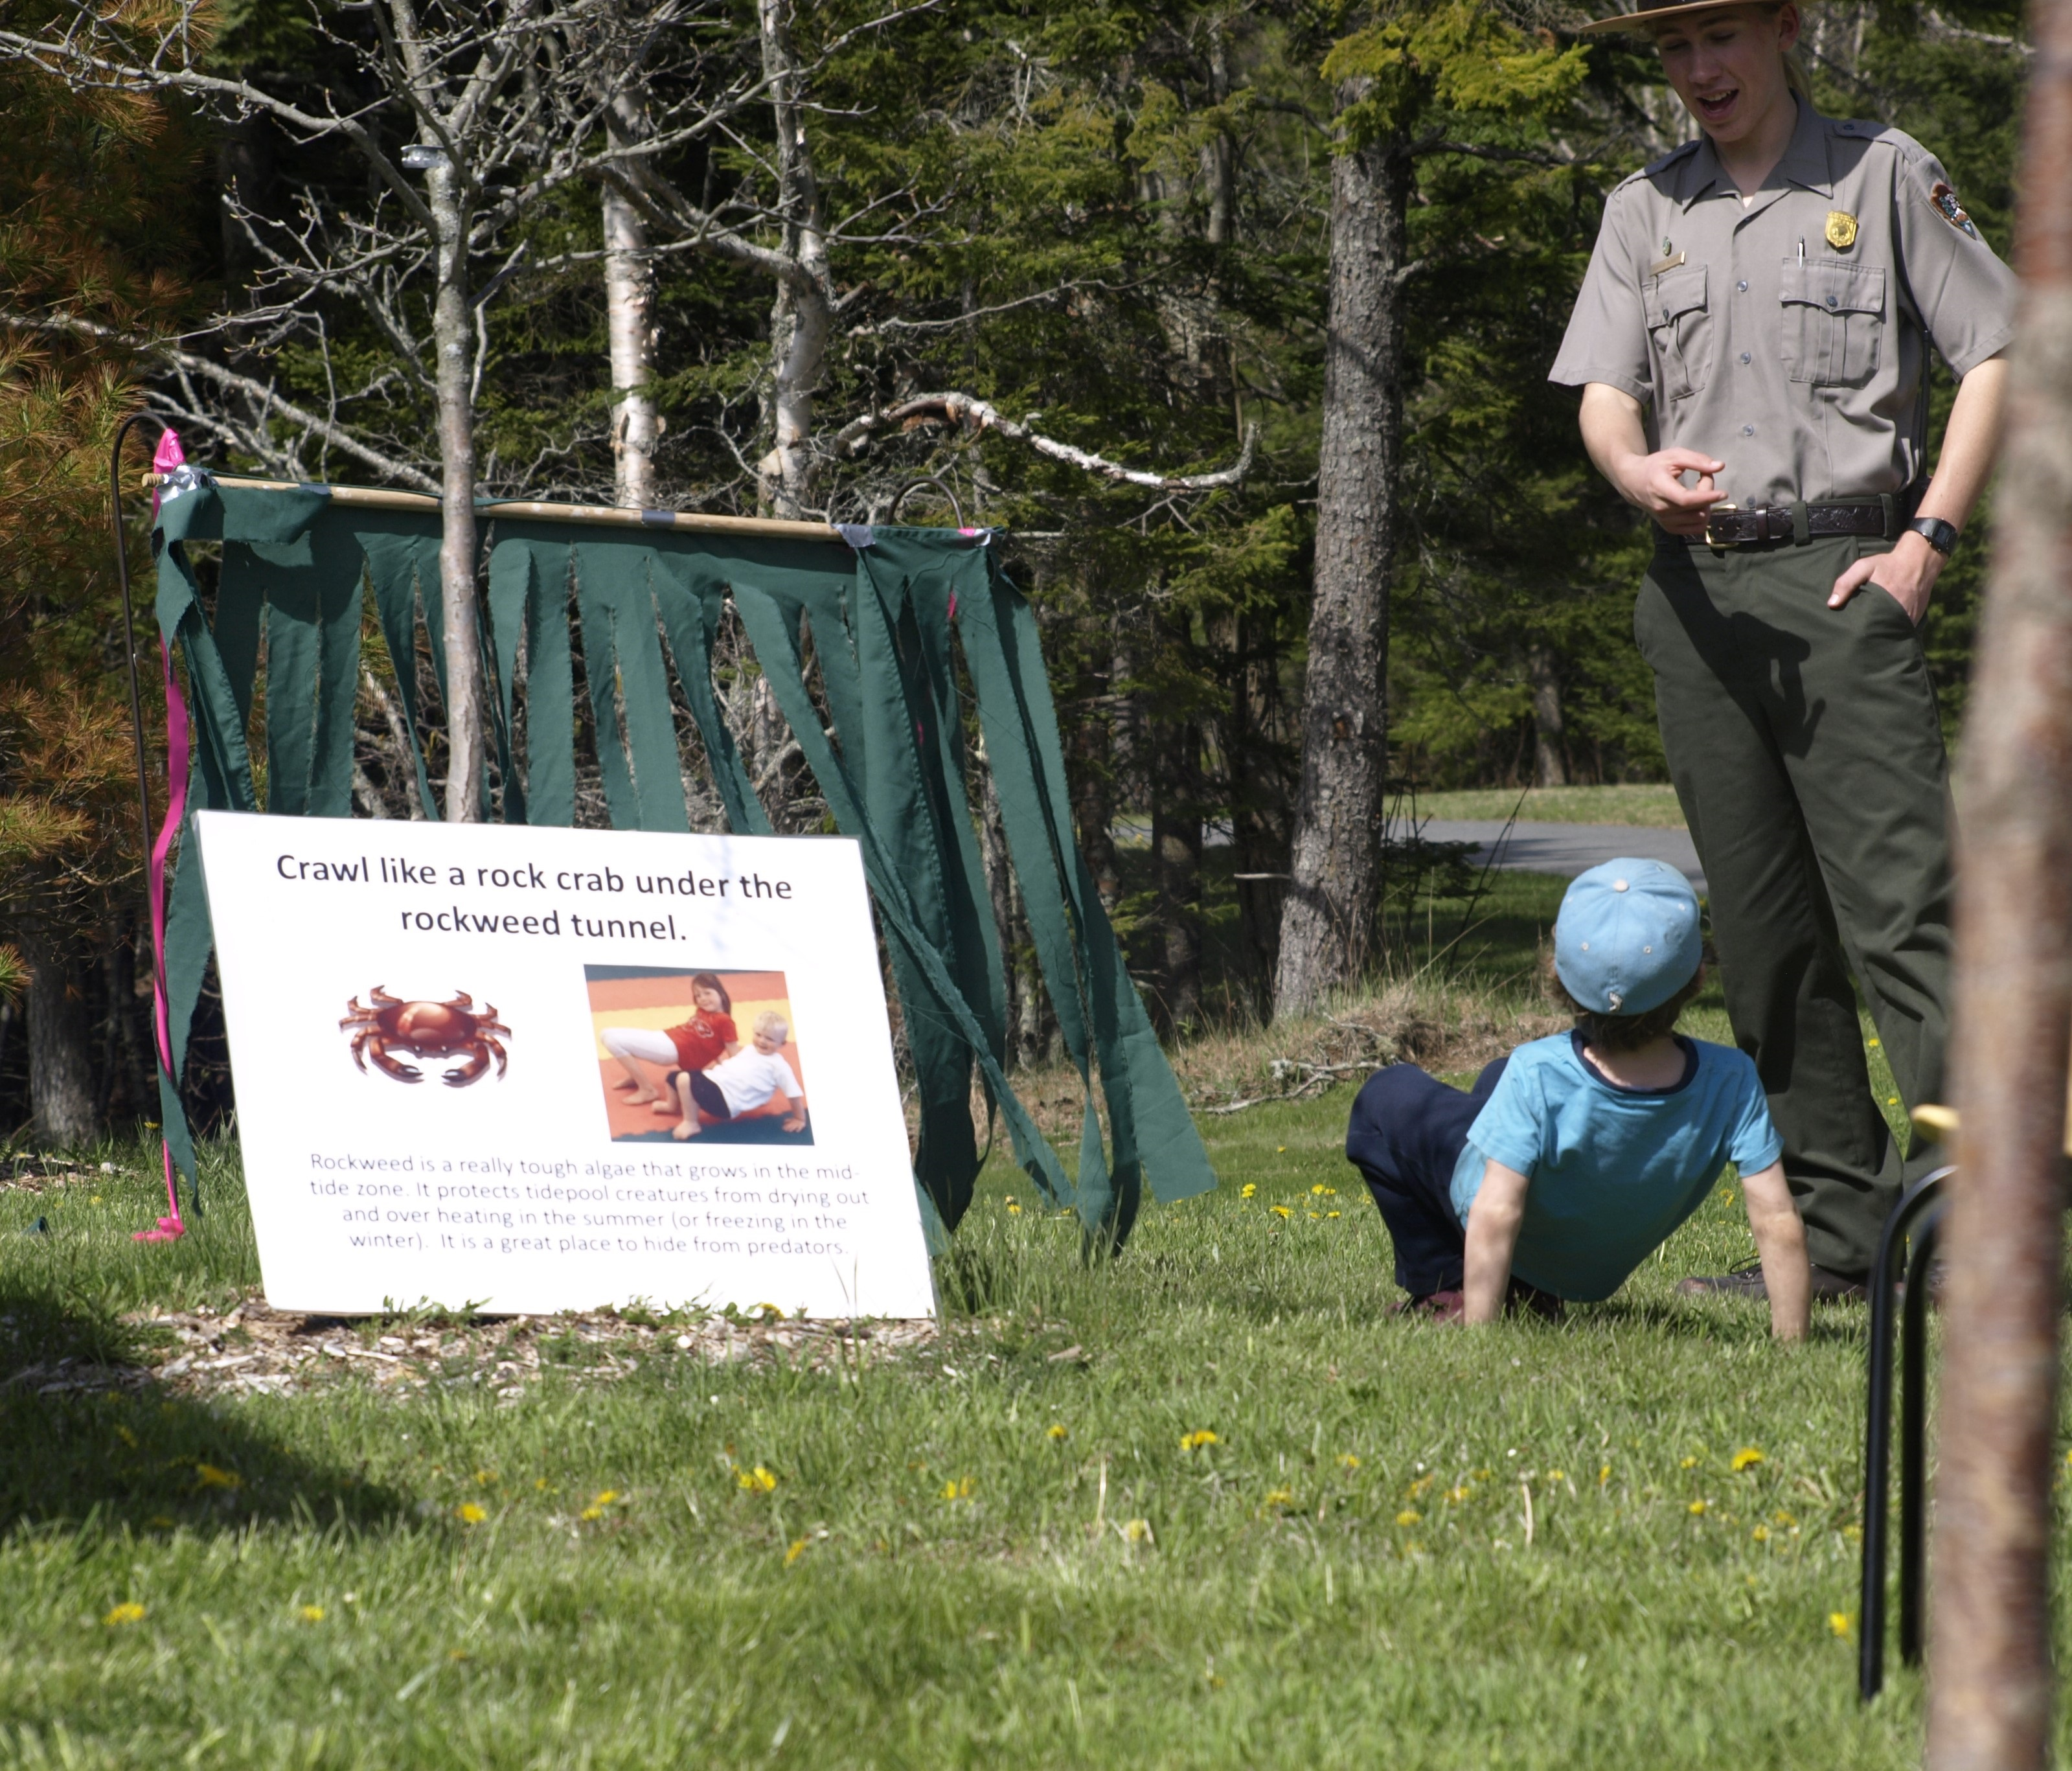 Park ranger Seamus Russet teaches Junior Rangers to crawl like a crab under the rockweed tunnel